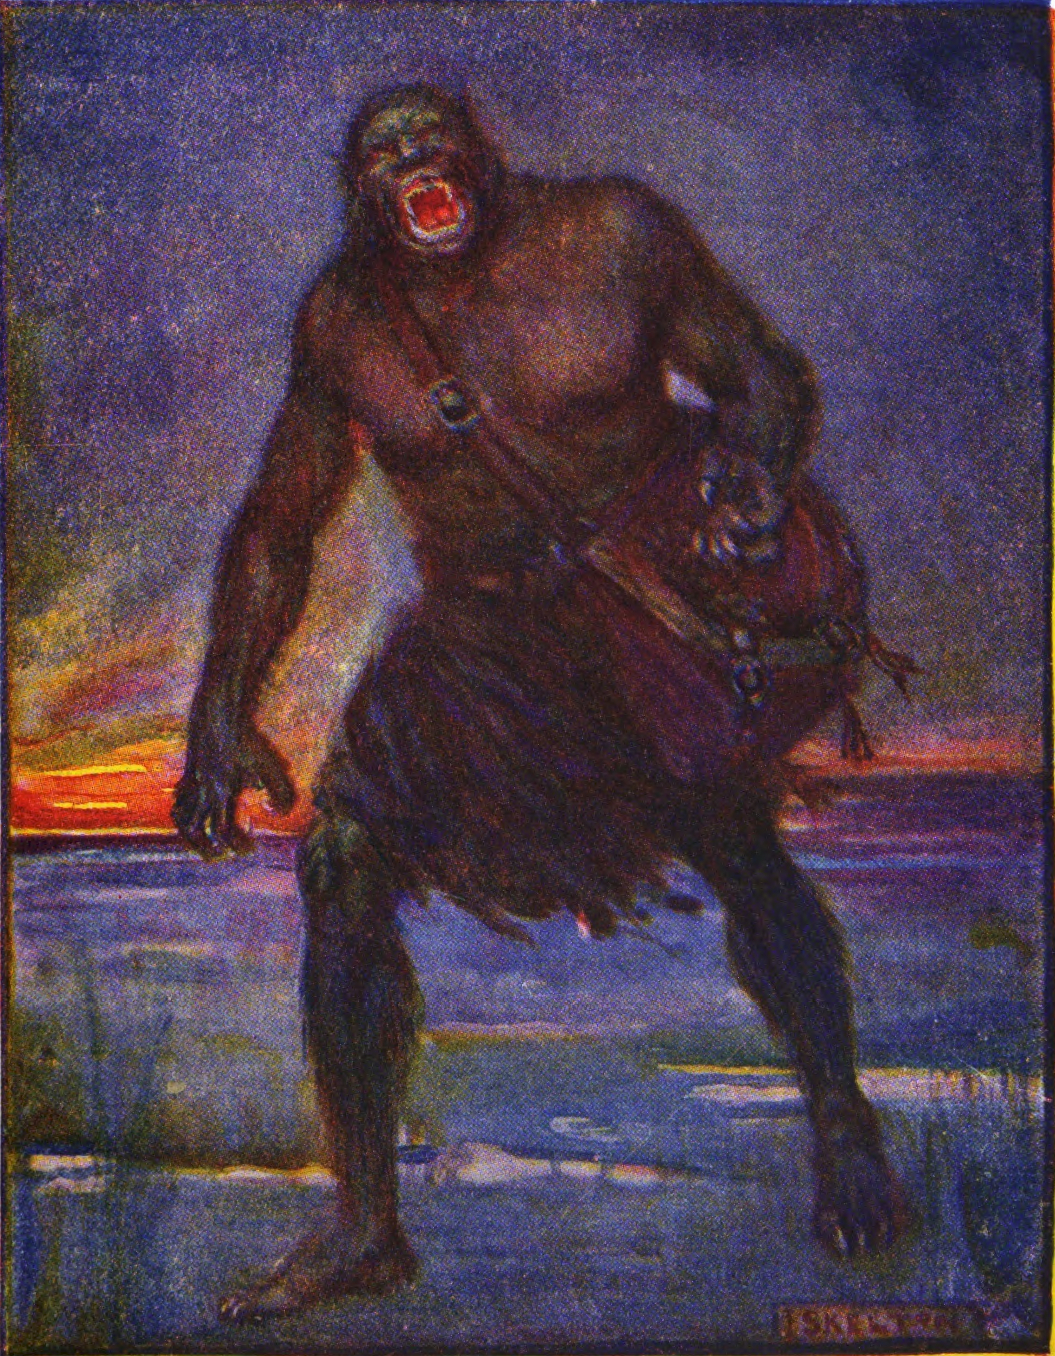 a descriptive essay of grendel from beowulf writework an illustration of grendel by j r skelton from stories of beowulf grendel is described as